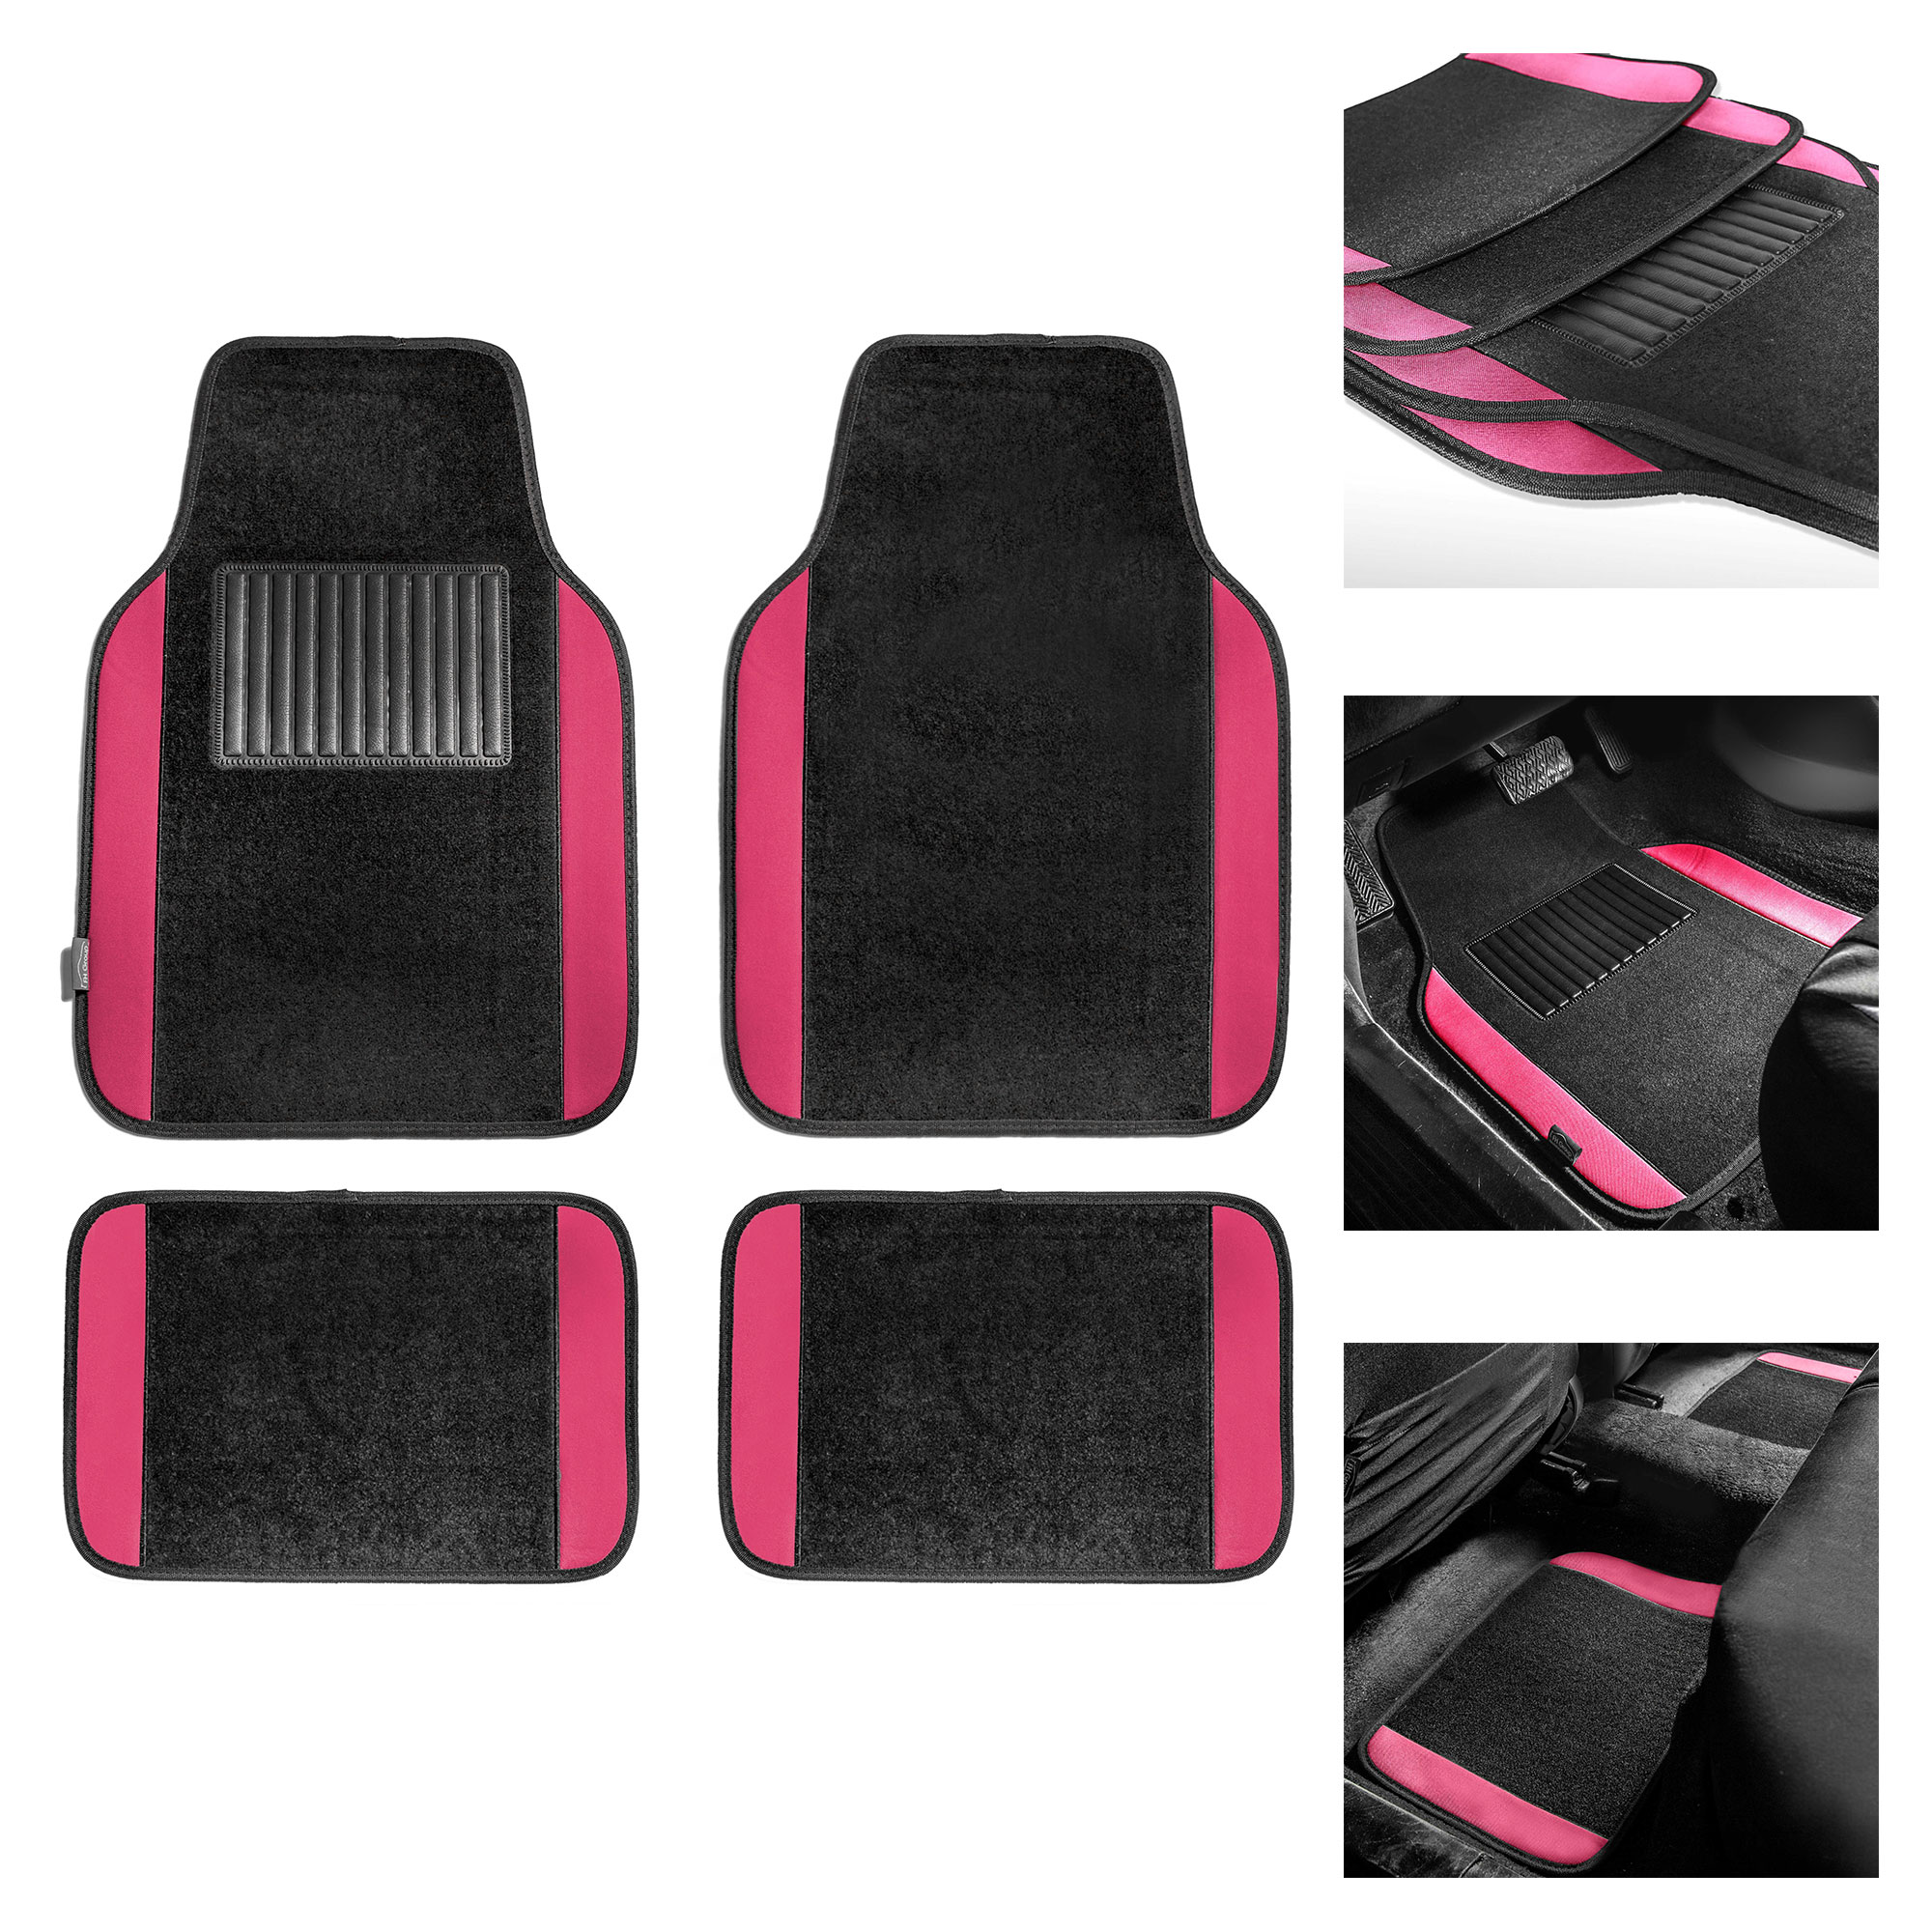 FH Group Premium Full Set Carpet Floor Mats Set For Auto w/ Free Gift, 10 Colors